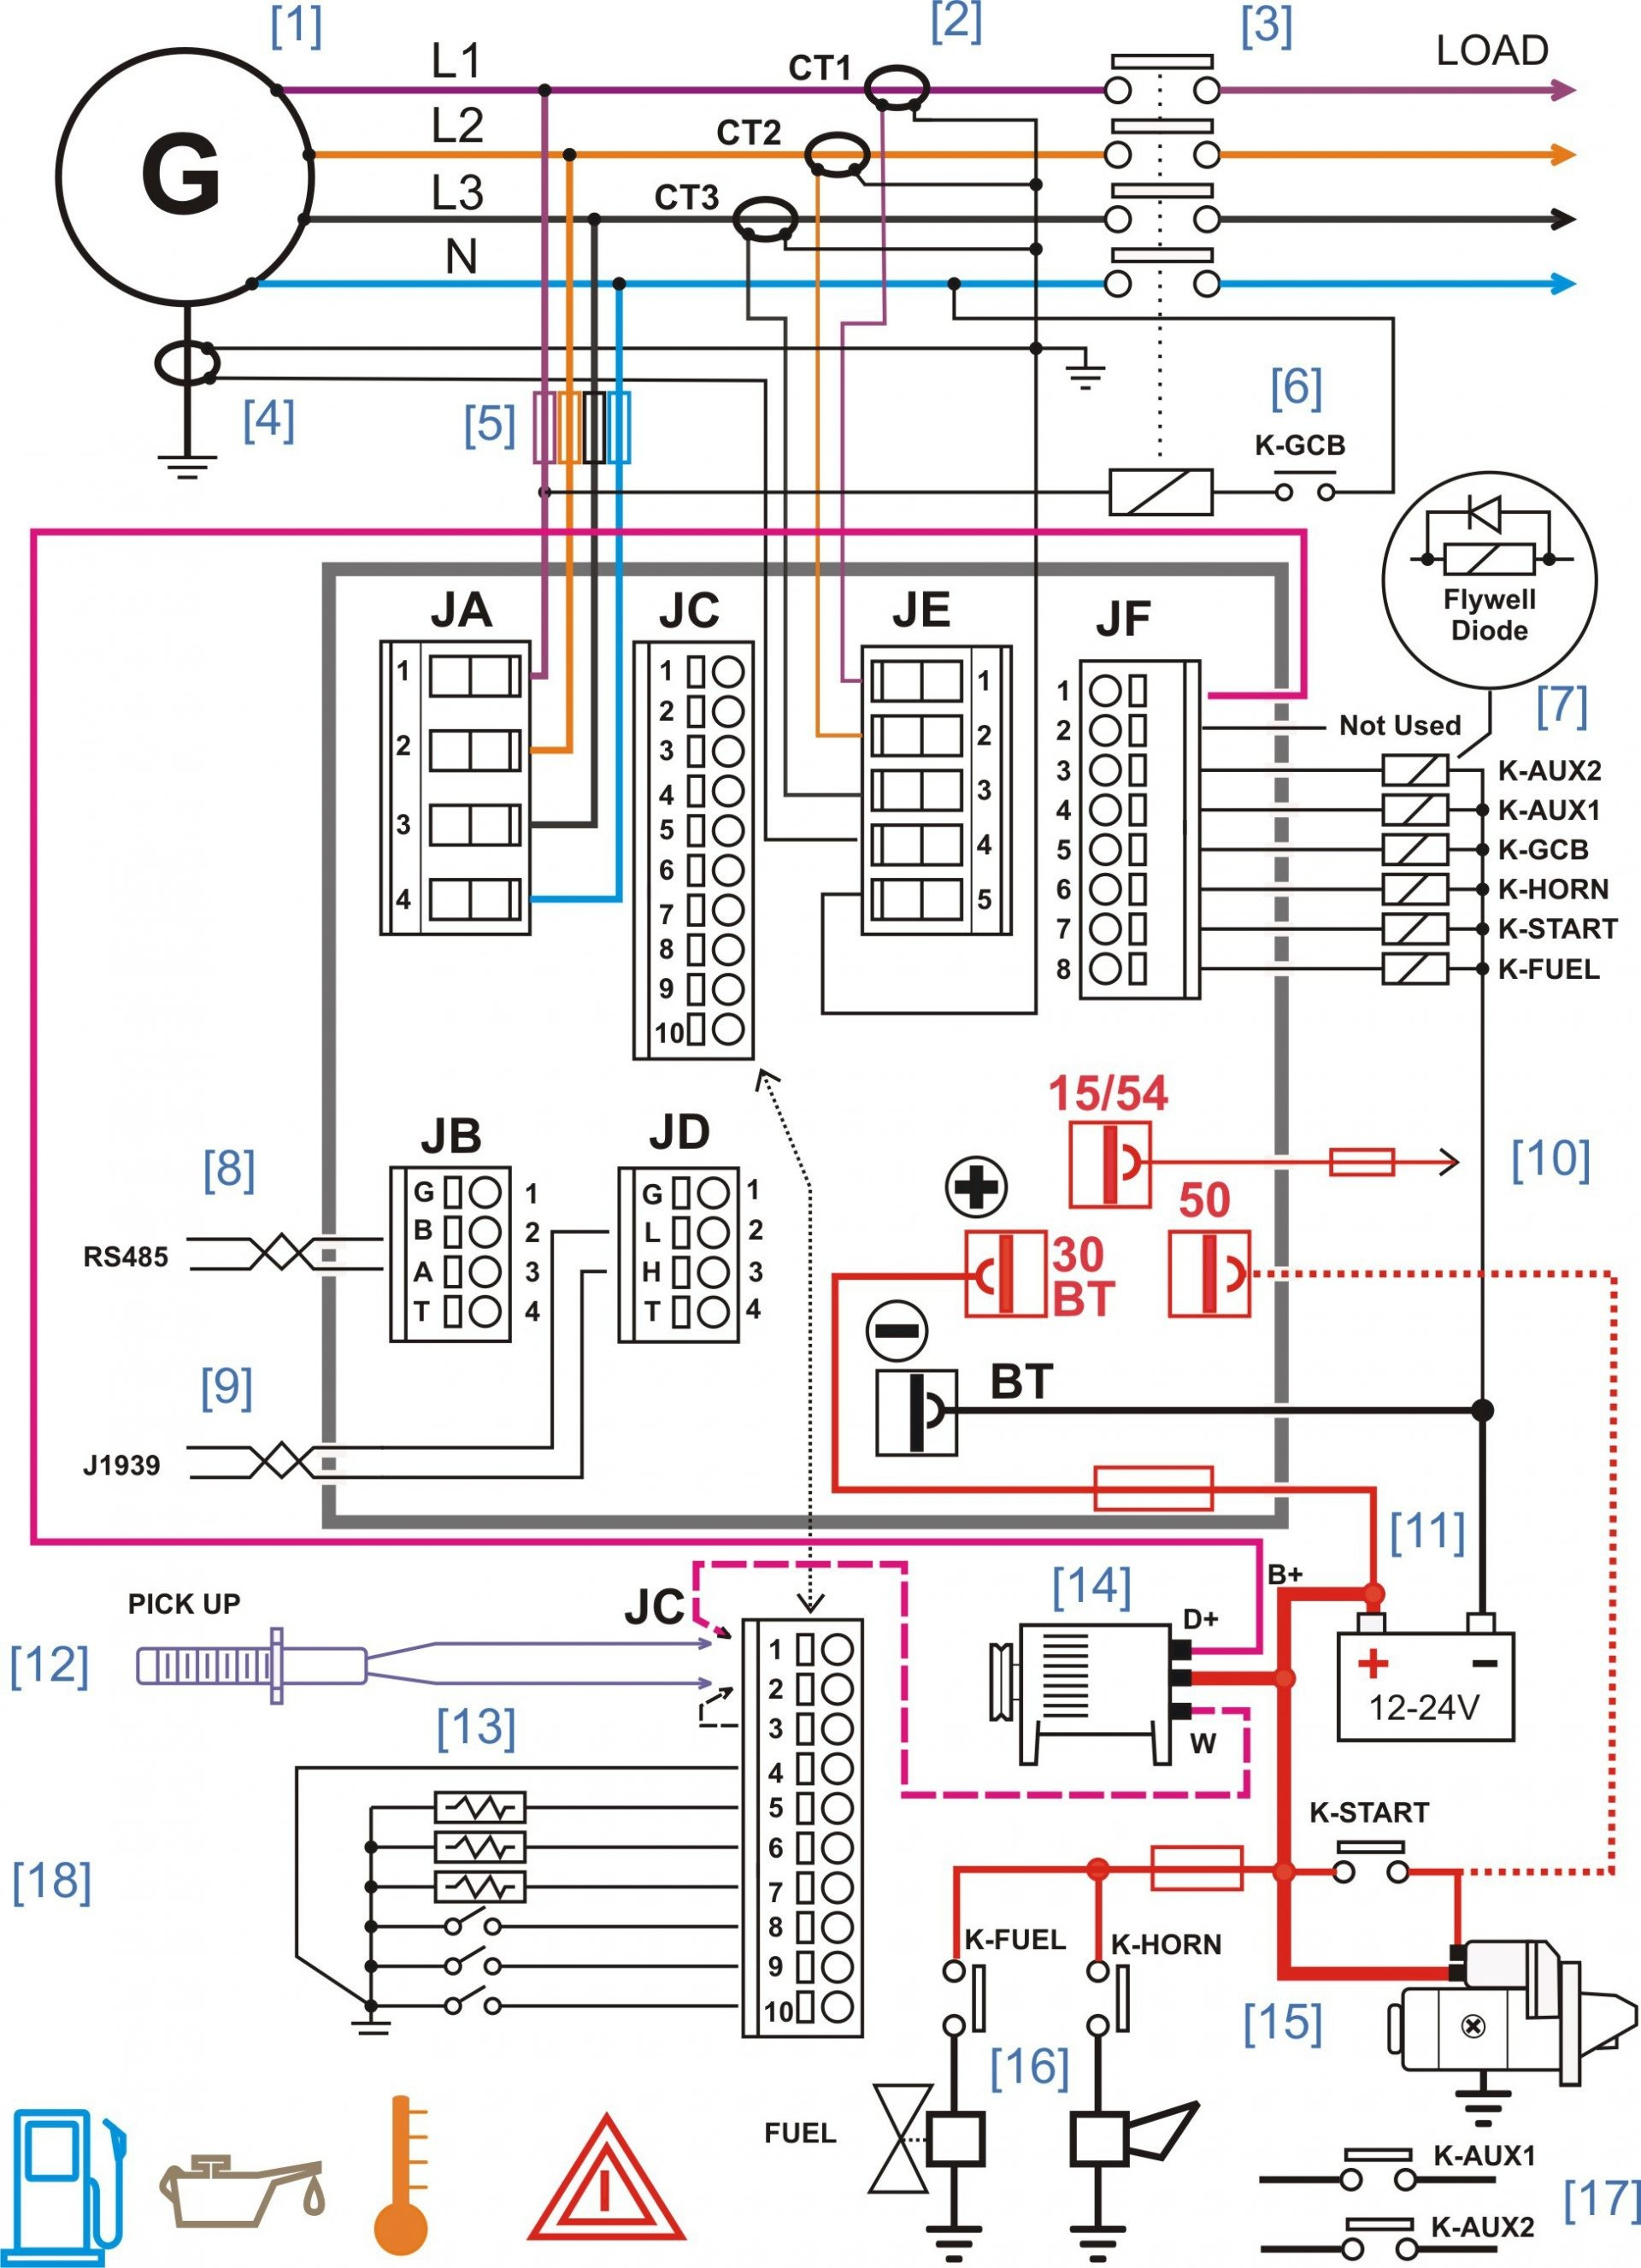 Car Radio Wiring Diagram Kenwood Stereo Kdc 210u Within In Delphi Delco  Part Number And Diagram Car Radio Wiring For Kenwood Stereo Pioneer Mosfet  50wx4 ...